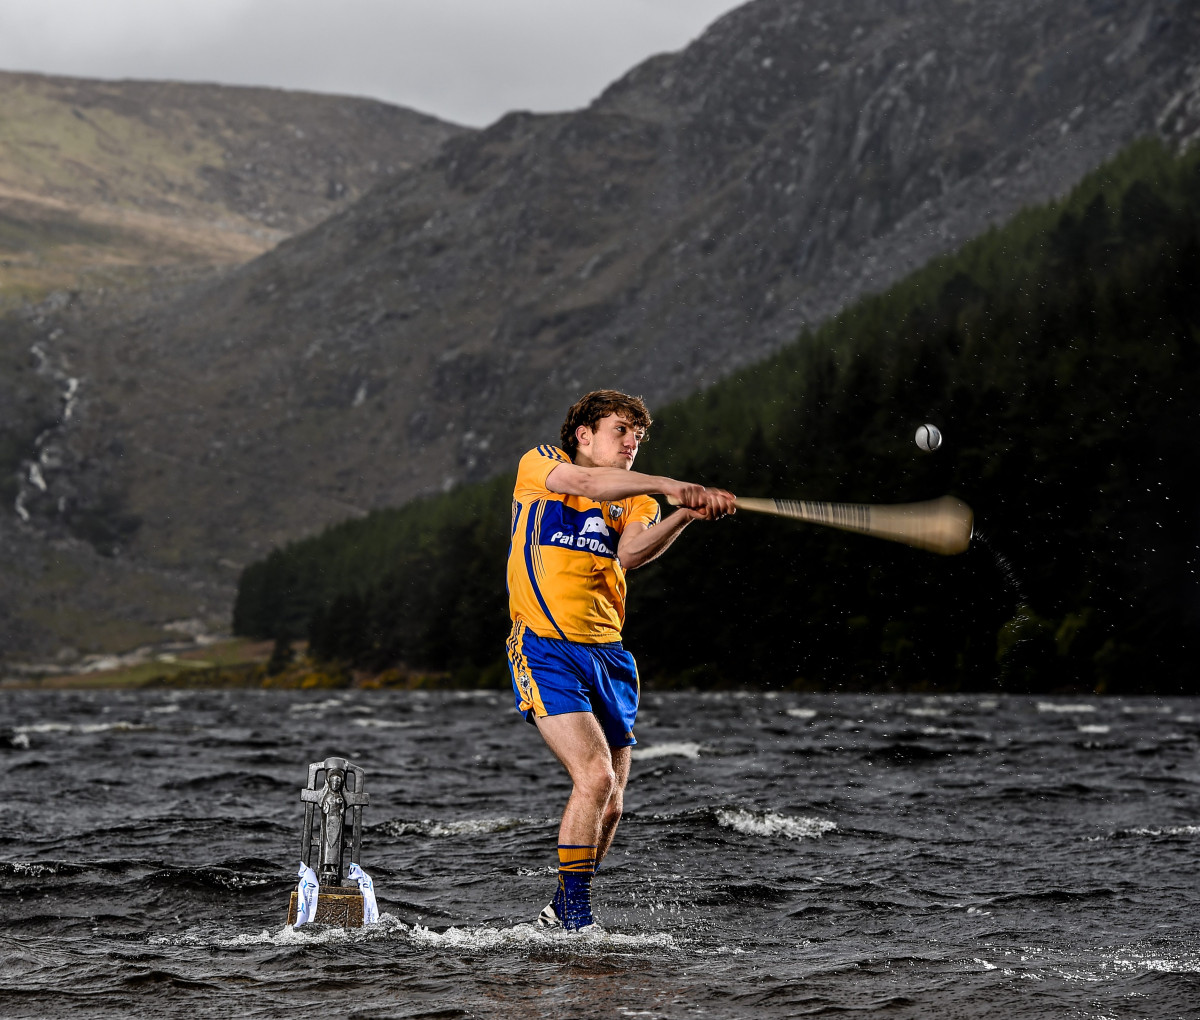 U-21 Clare hurling star Shane O'Donnell pictured at the launch of the 2015 Bord Gáis Energy GAA Hurling U-21 All-Ireland Championship at Glendalough, Co. Wicklow today. Picture credit: Stephen McCarthy / SPORTSFILE